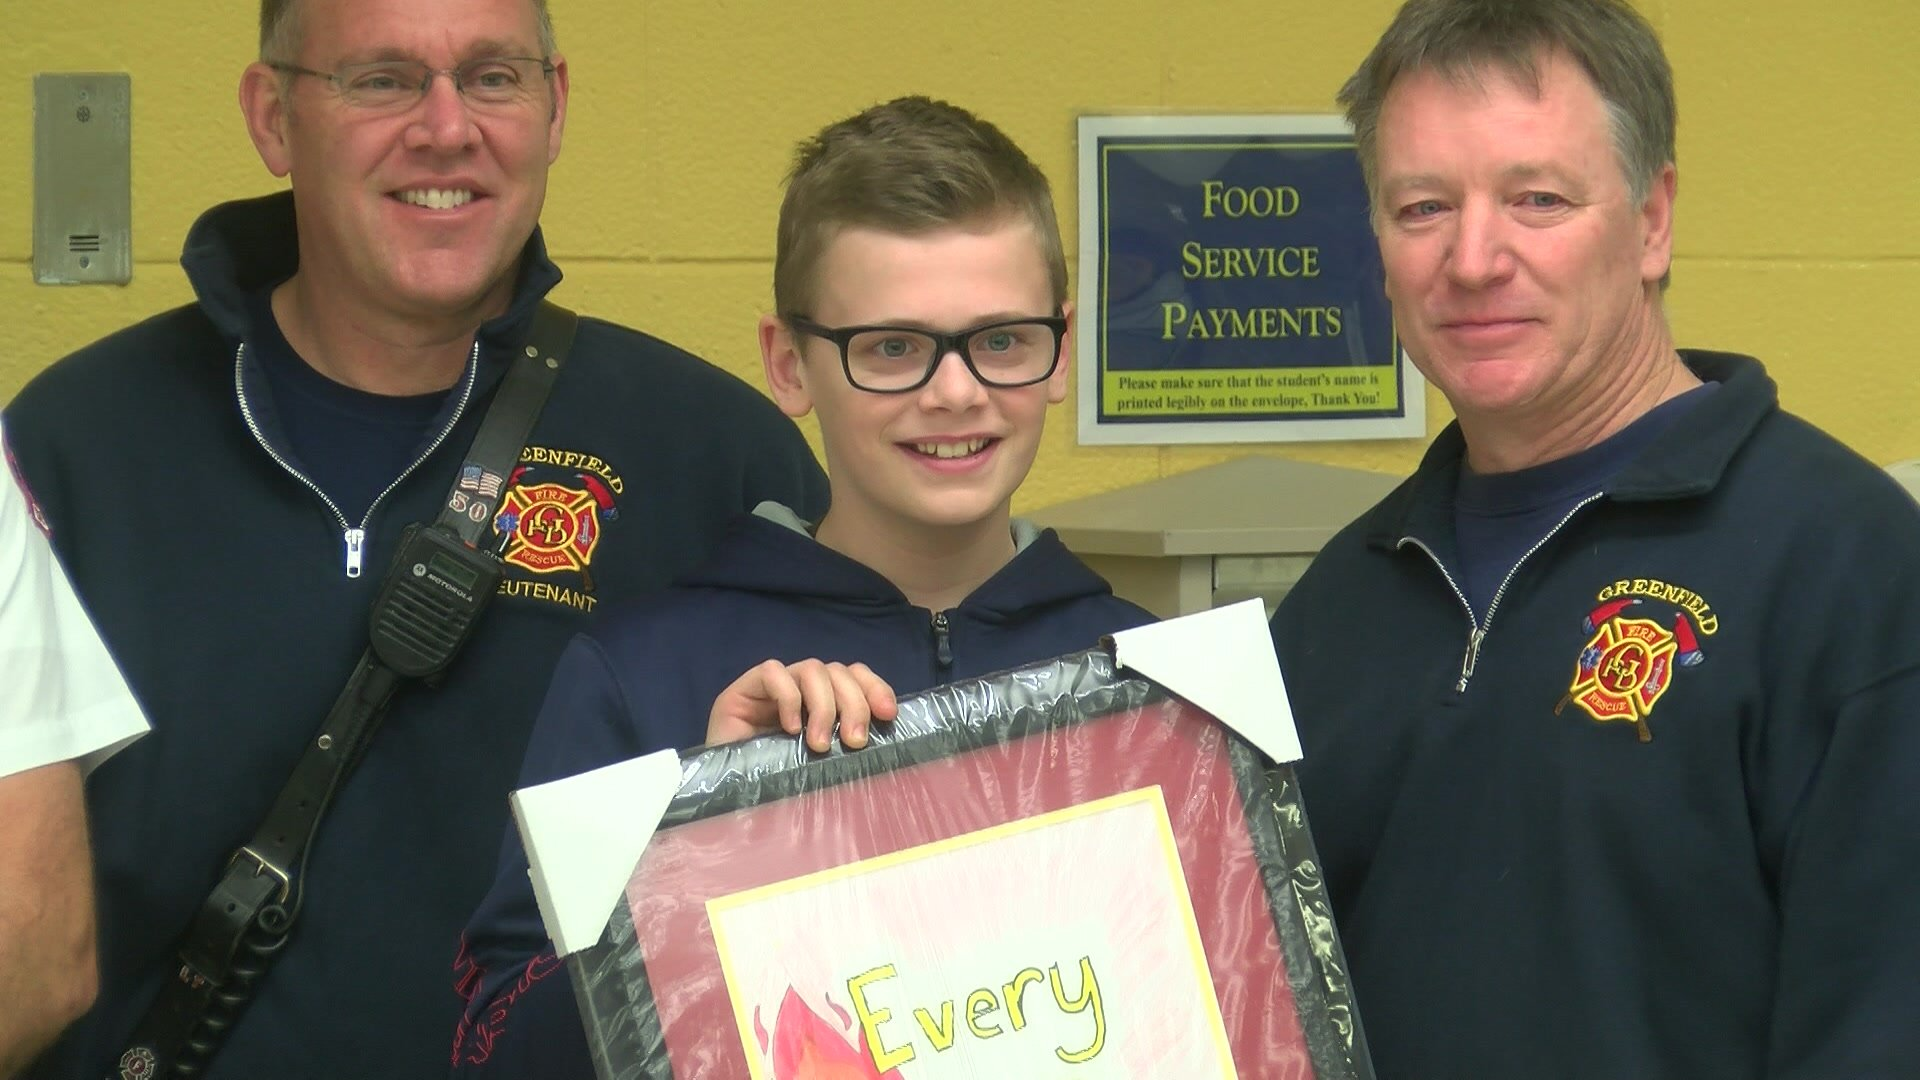 cbs local th grader wins statewide award in fire prevention local 6th grader wins statewide award in fire prevention contest